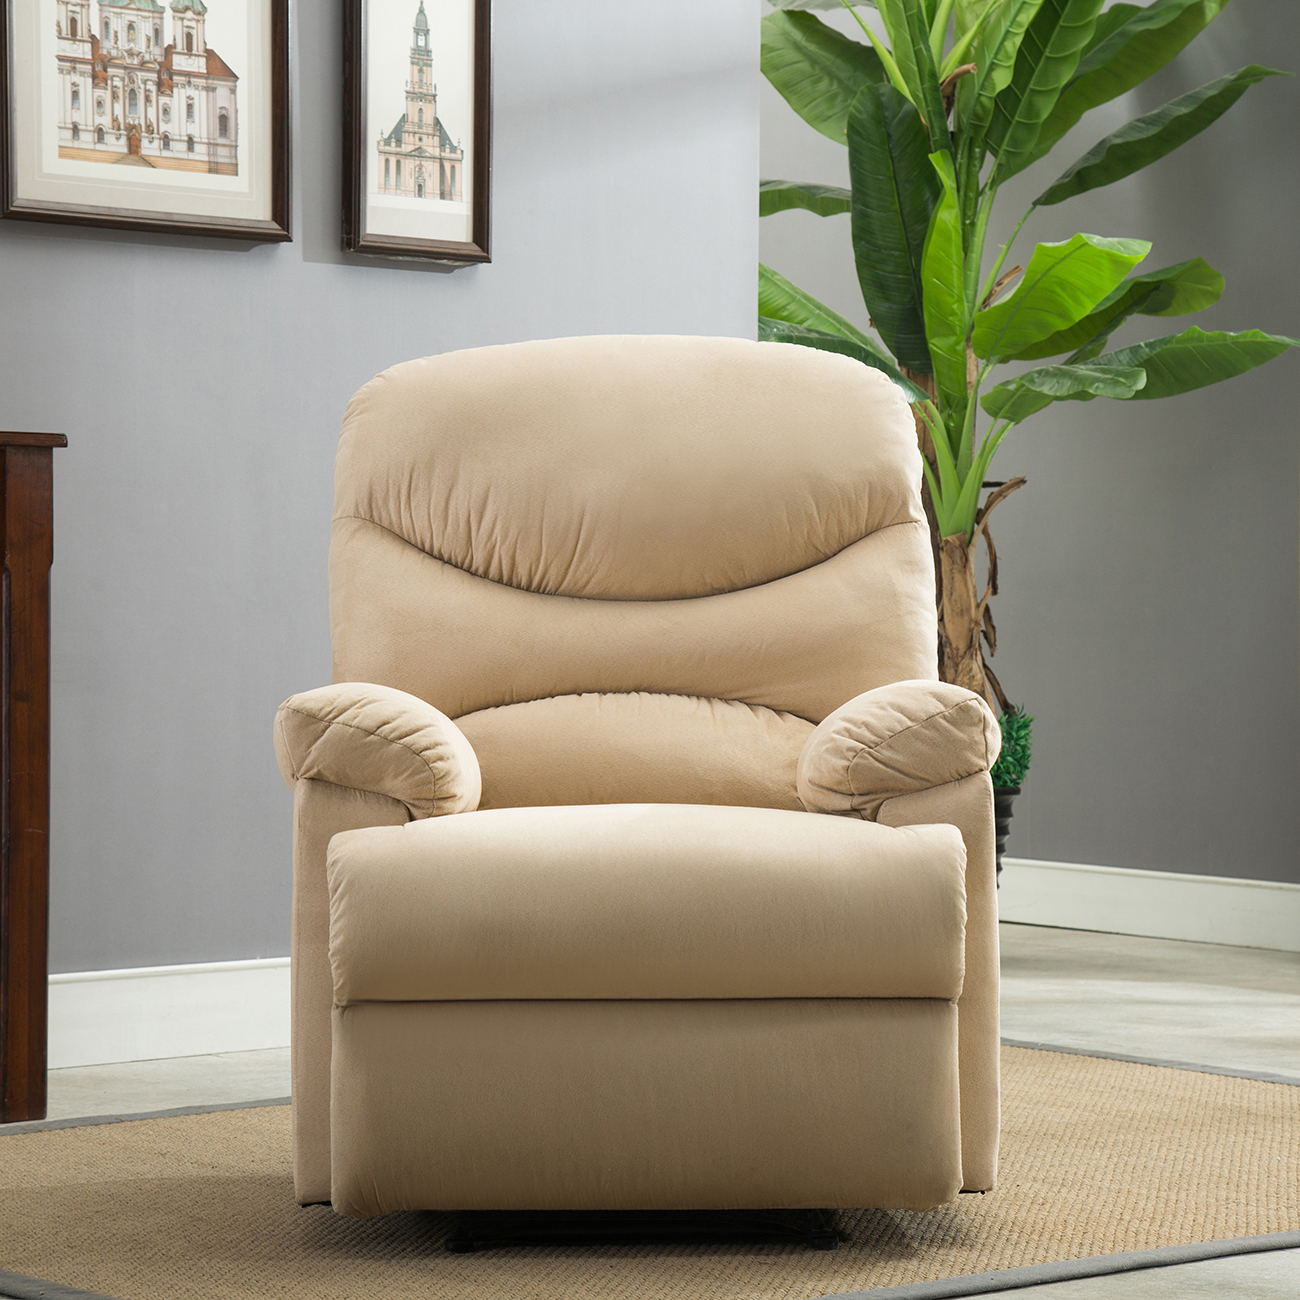 Recliner Chair Microfiber Reclining Furniture Home Living Room ...